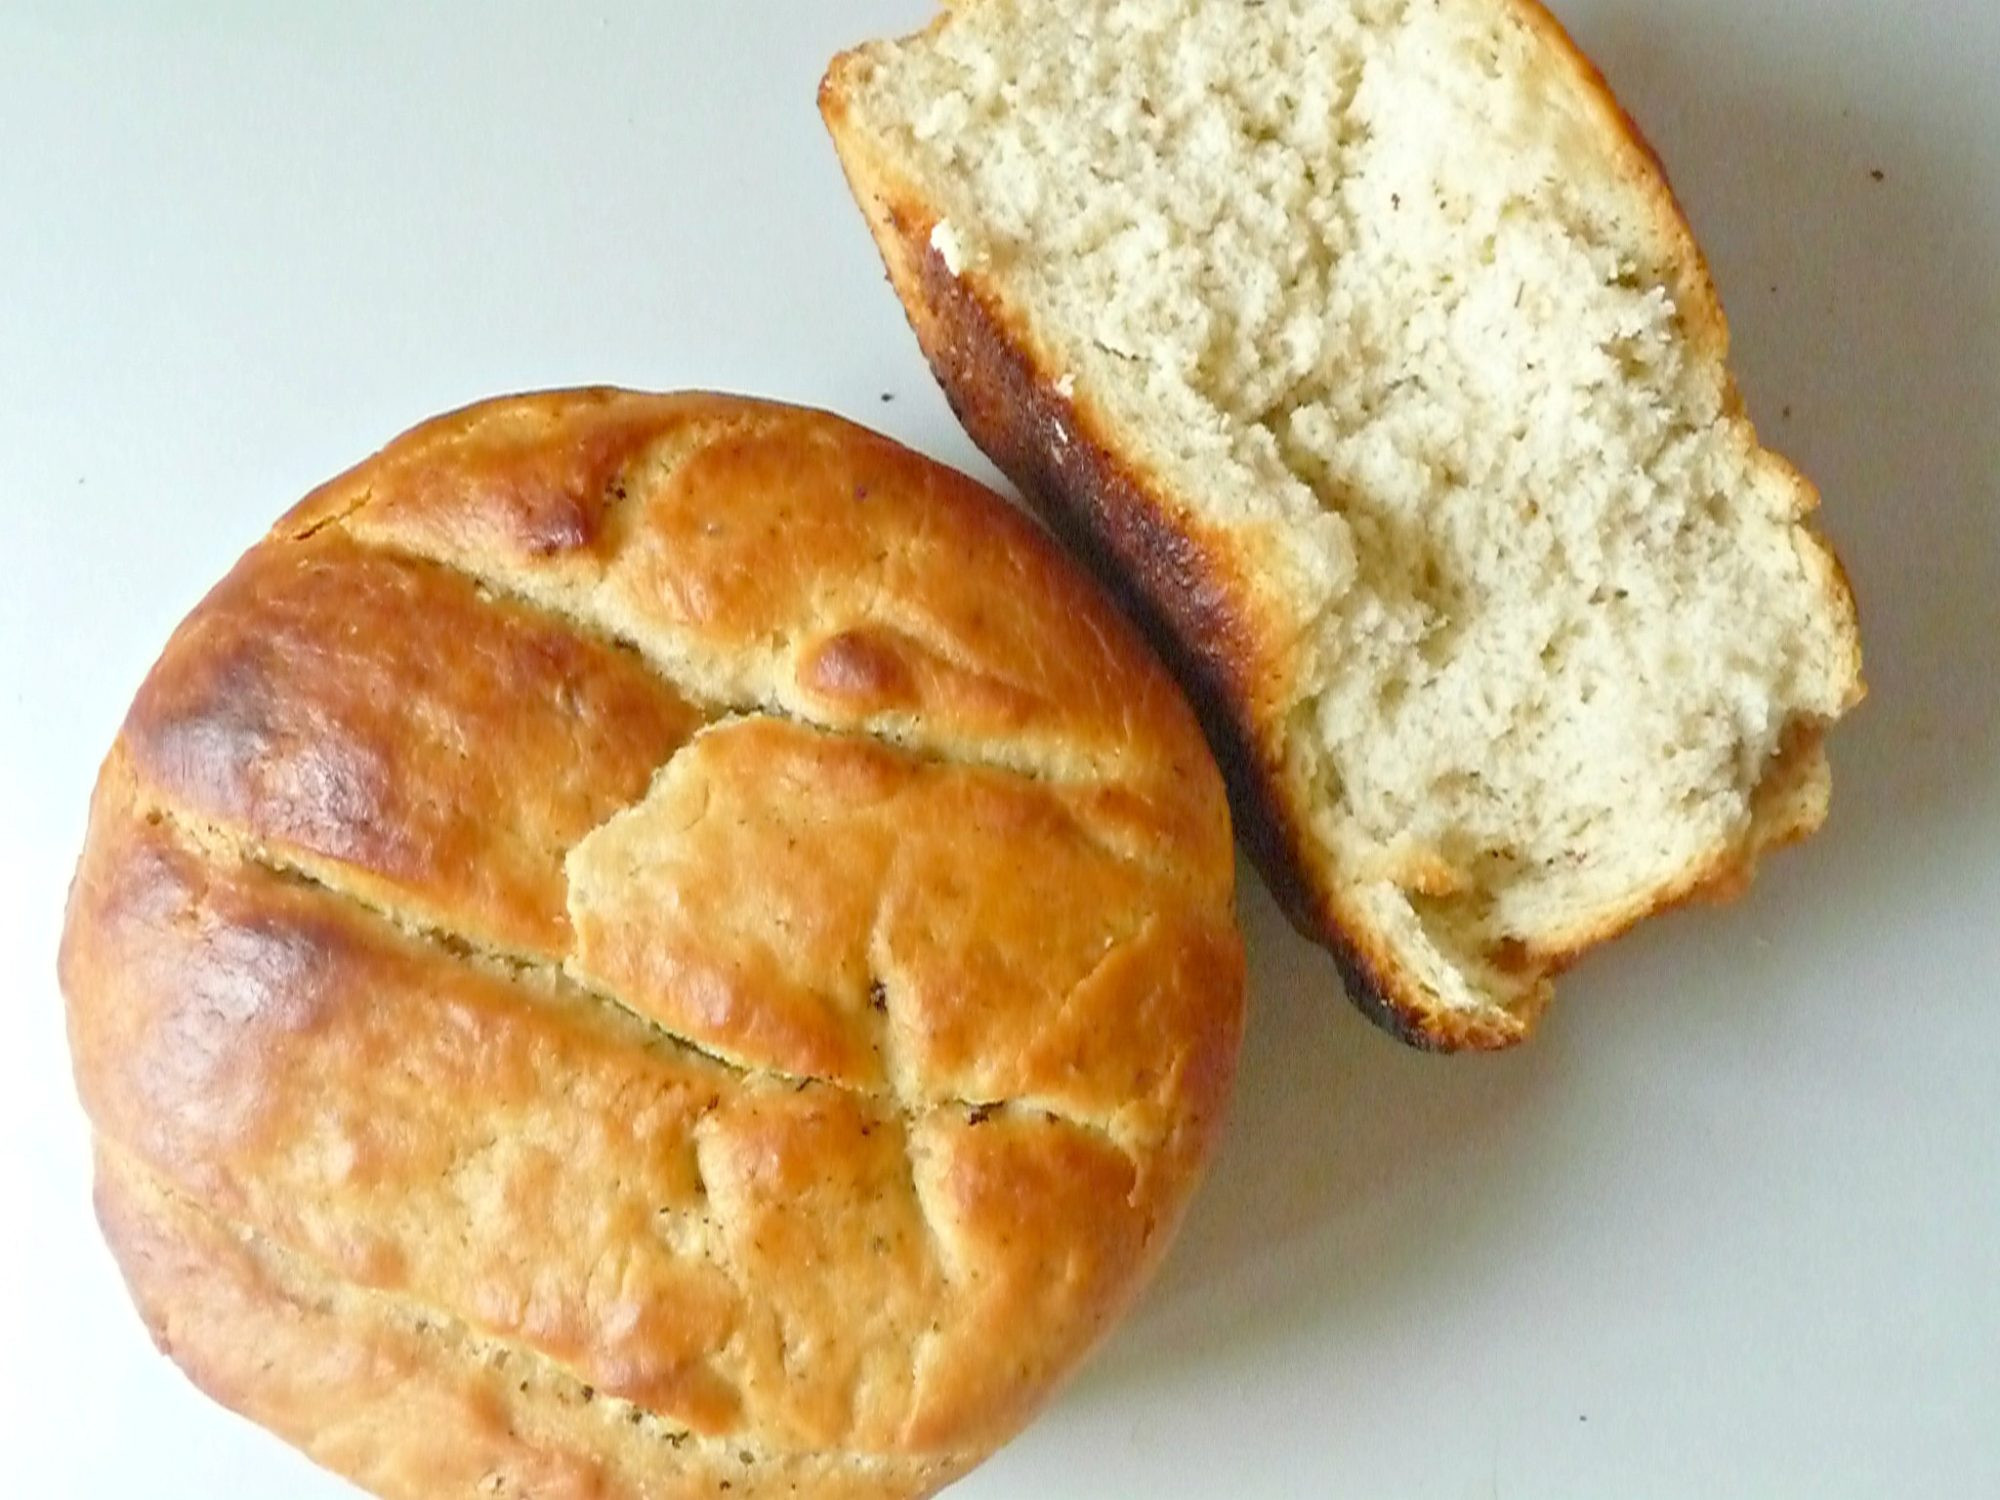 Gluten Free Bread Recipe  Gluten Free Bread recipe The Seaman Mom